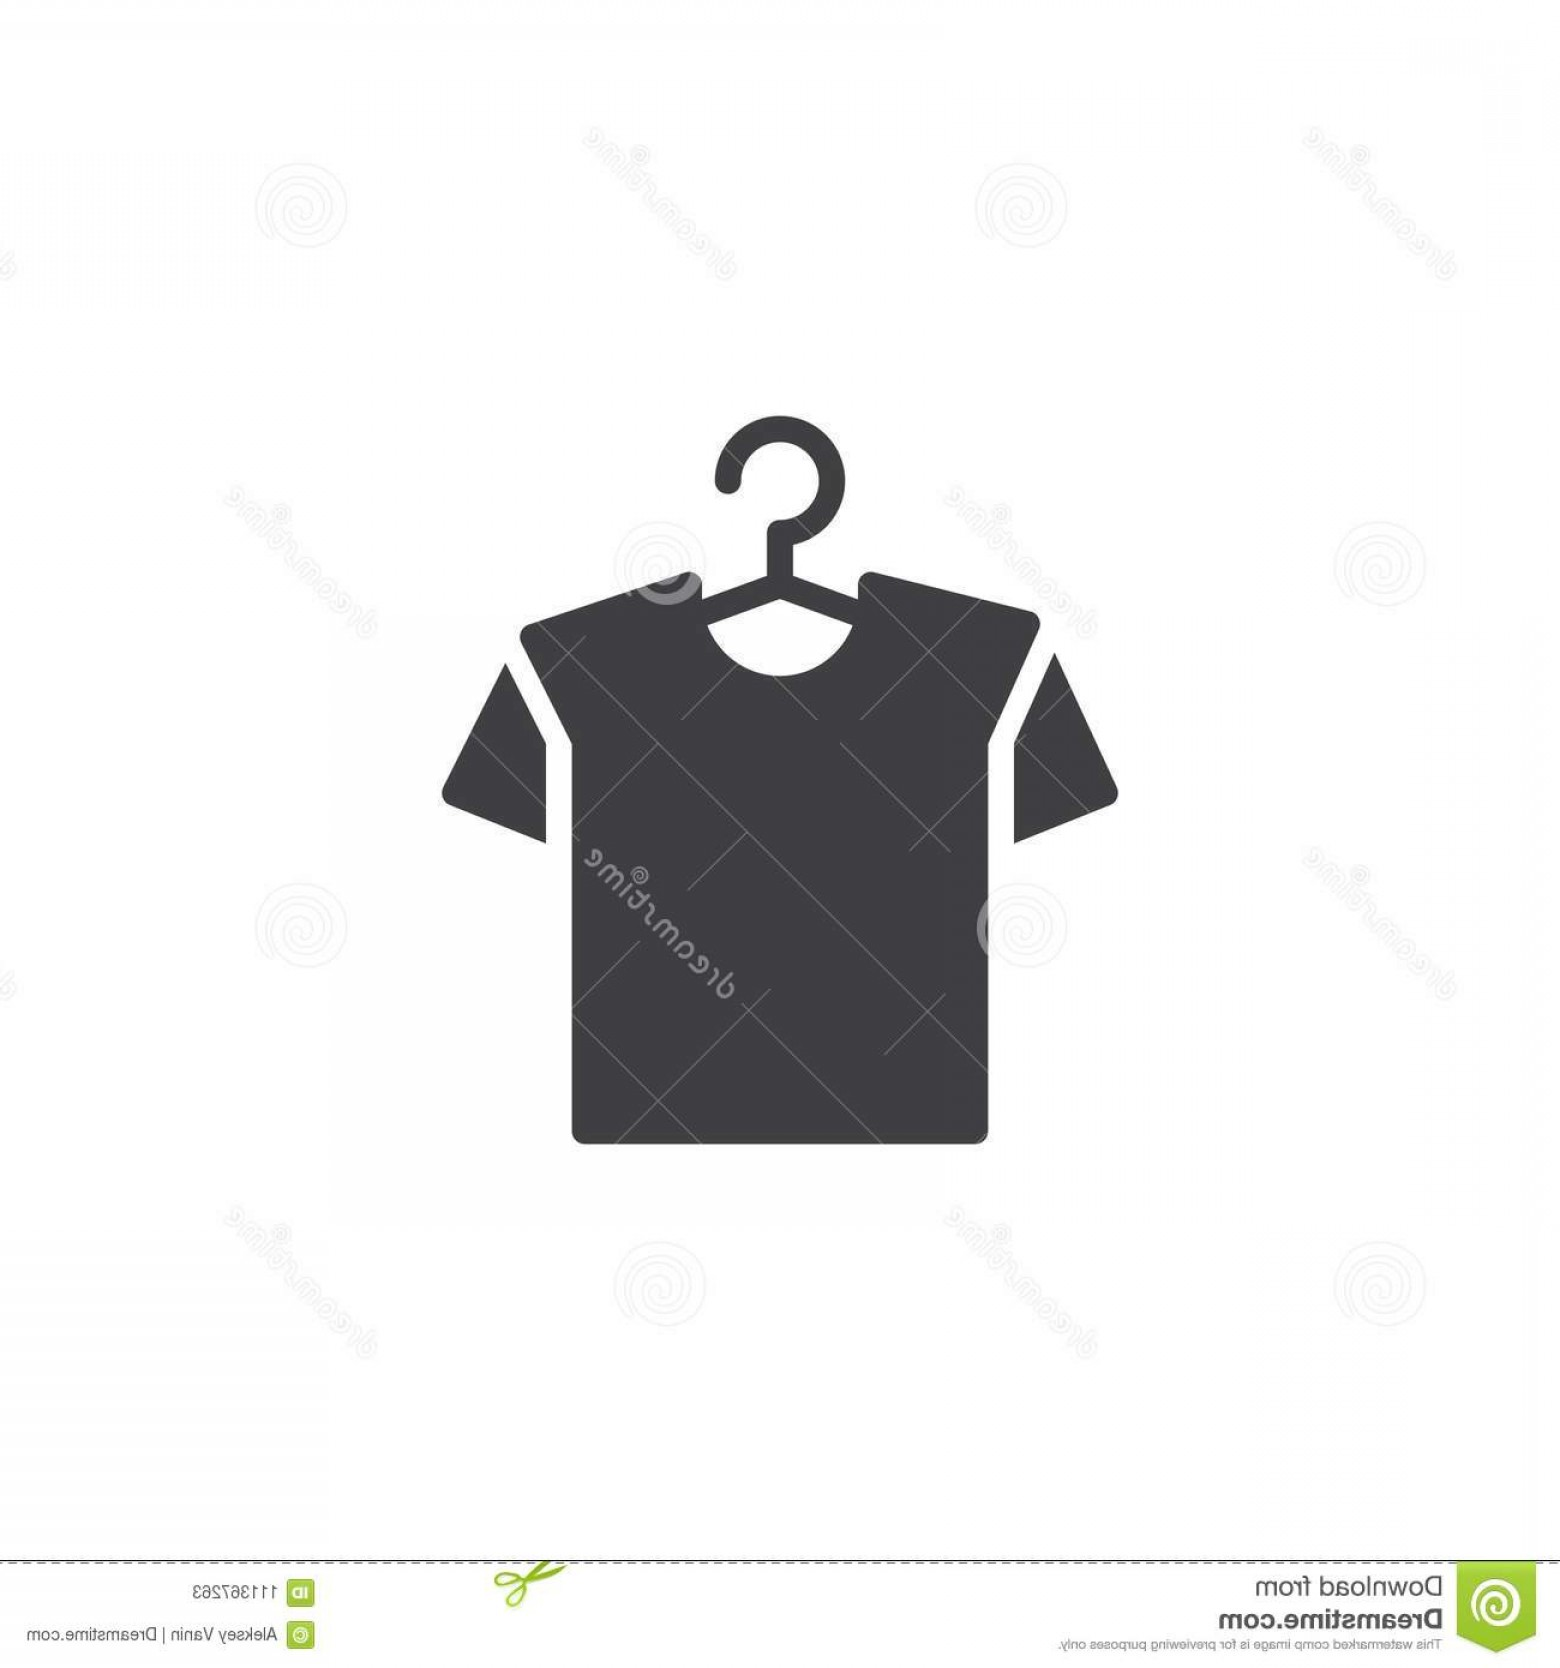 Shirt Hanger Icon Vector: Hanger Shirt Vector Icon Filled Flat Sign Mobile Concept Web Design T Shirt Hanger Simple Solid Icon Symbol Logo Image